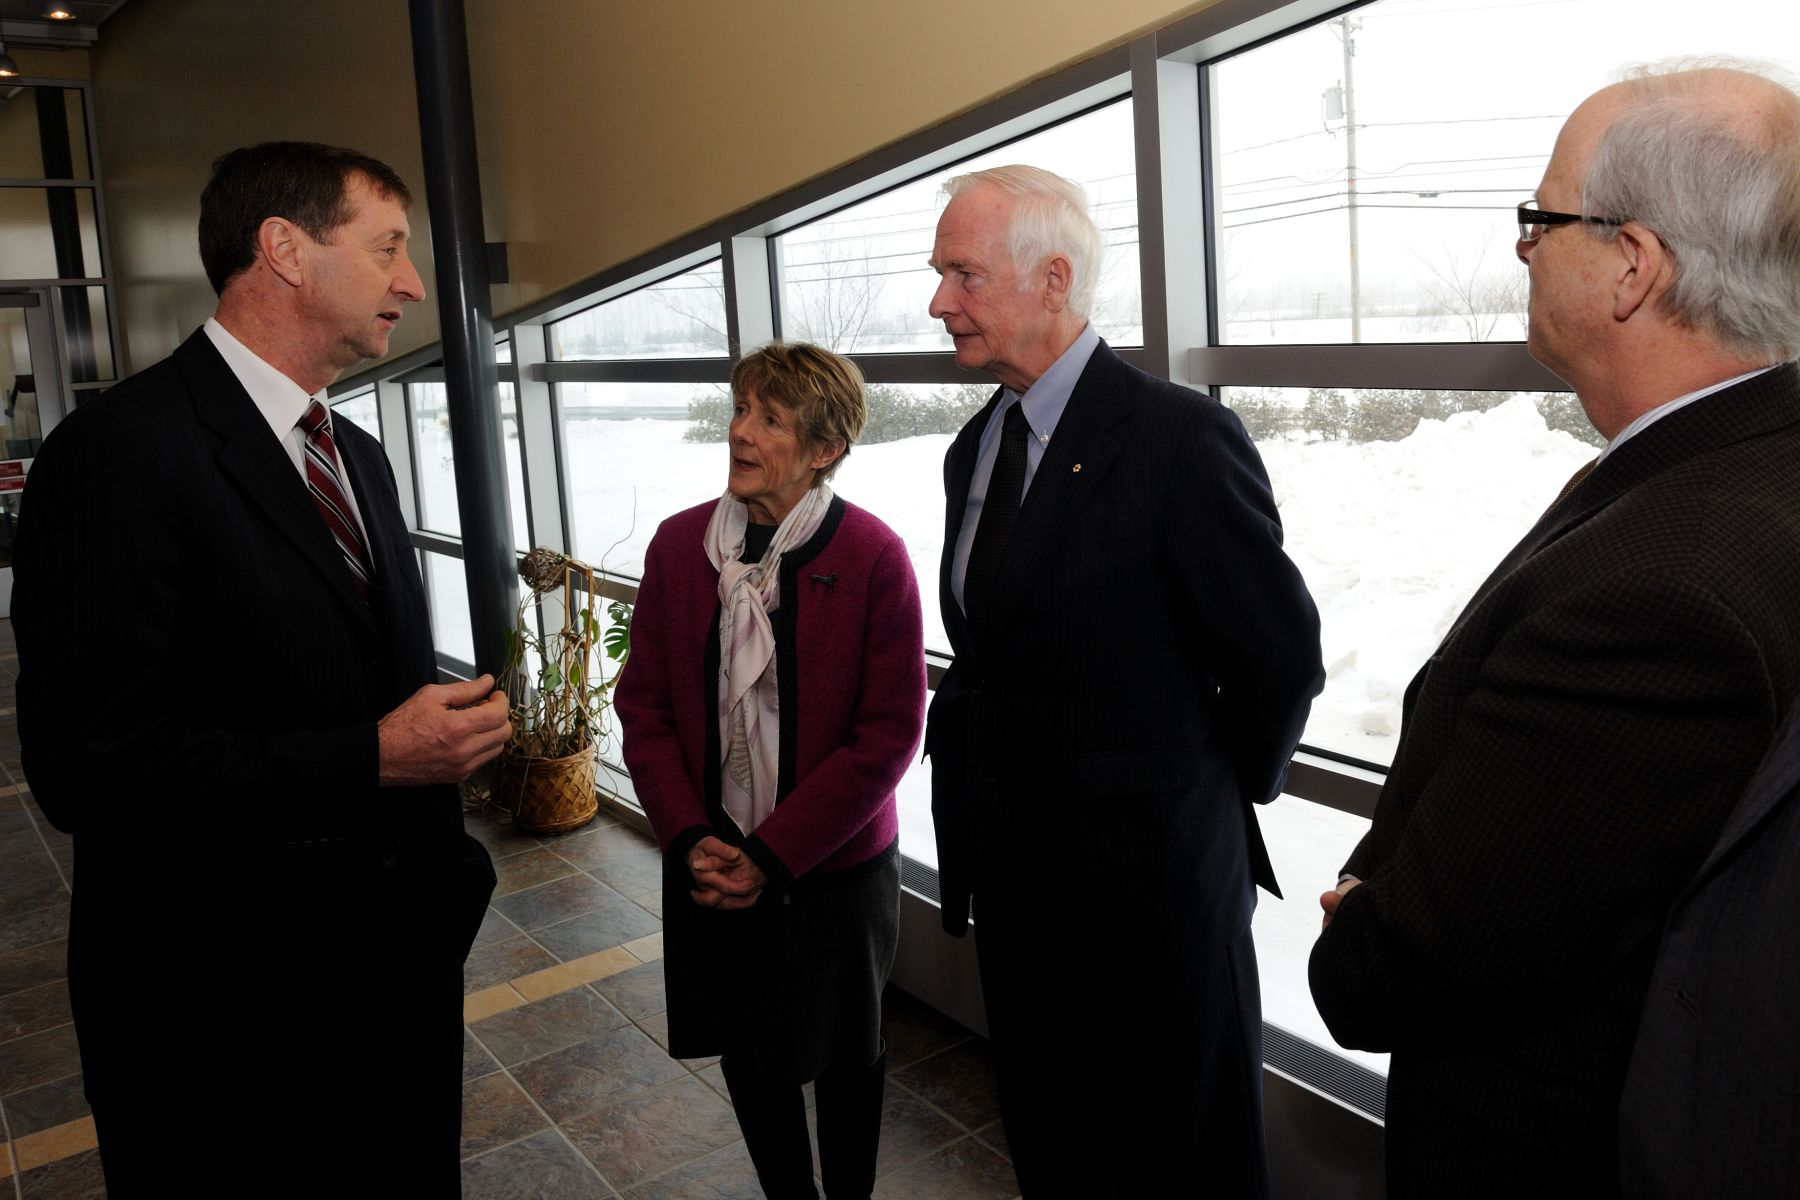 Their Excellencies proceeded to the Centre de développement bioalimentaire du Québec for a visit of the bio-food complex.